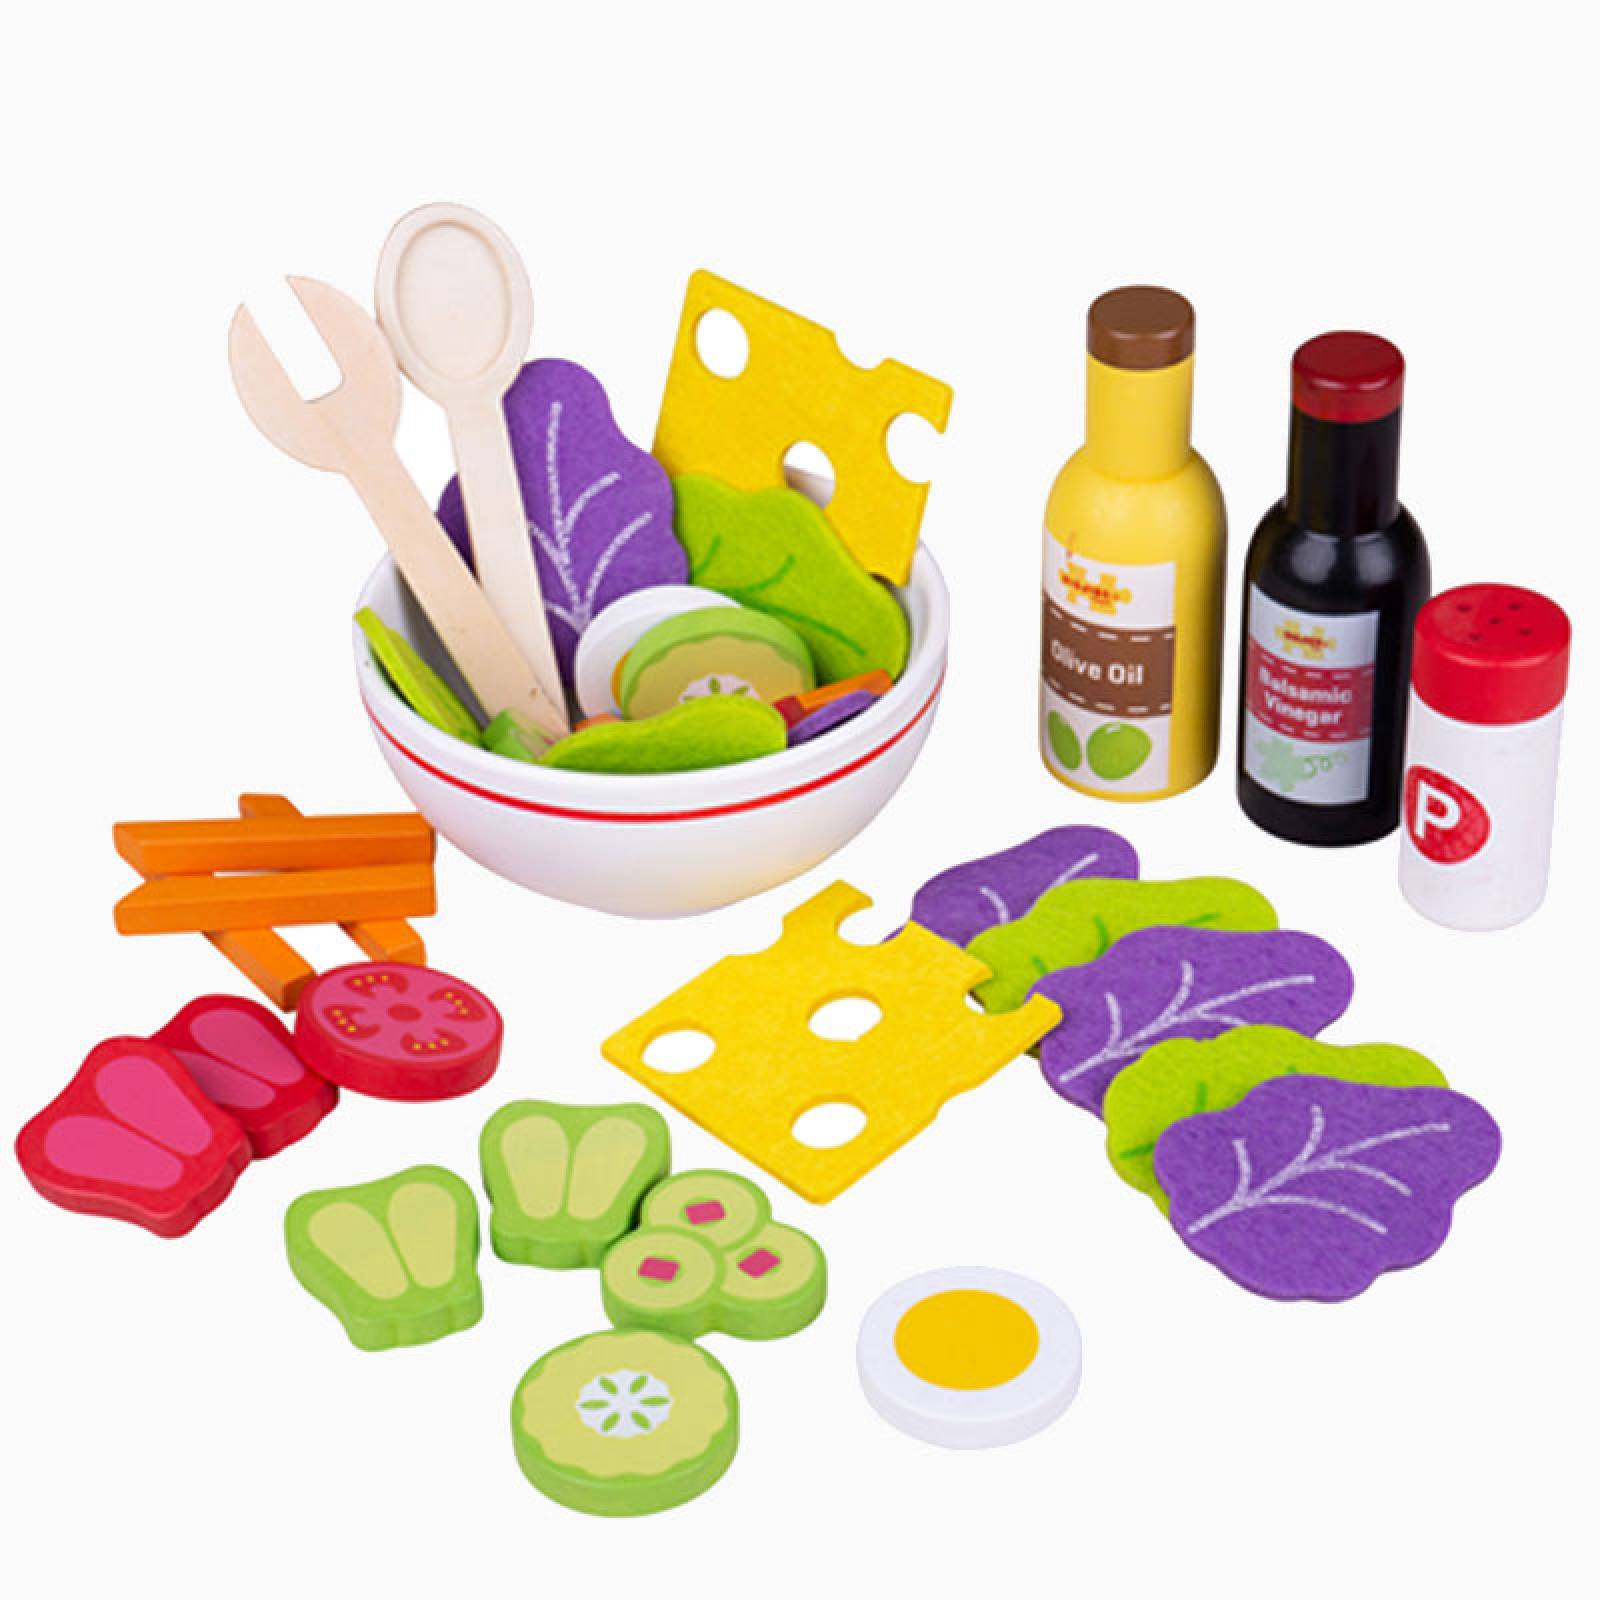 Wooden And Felt Salad Set By Bigjigs 3+